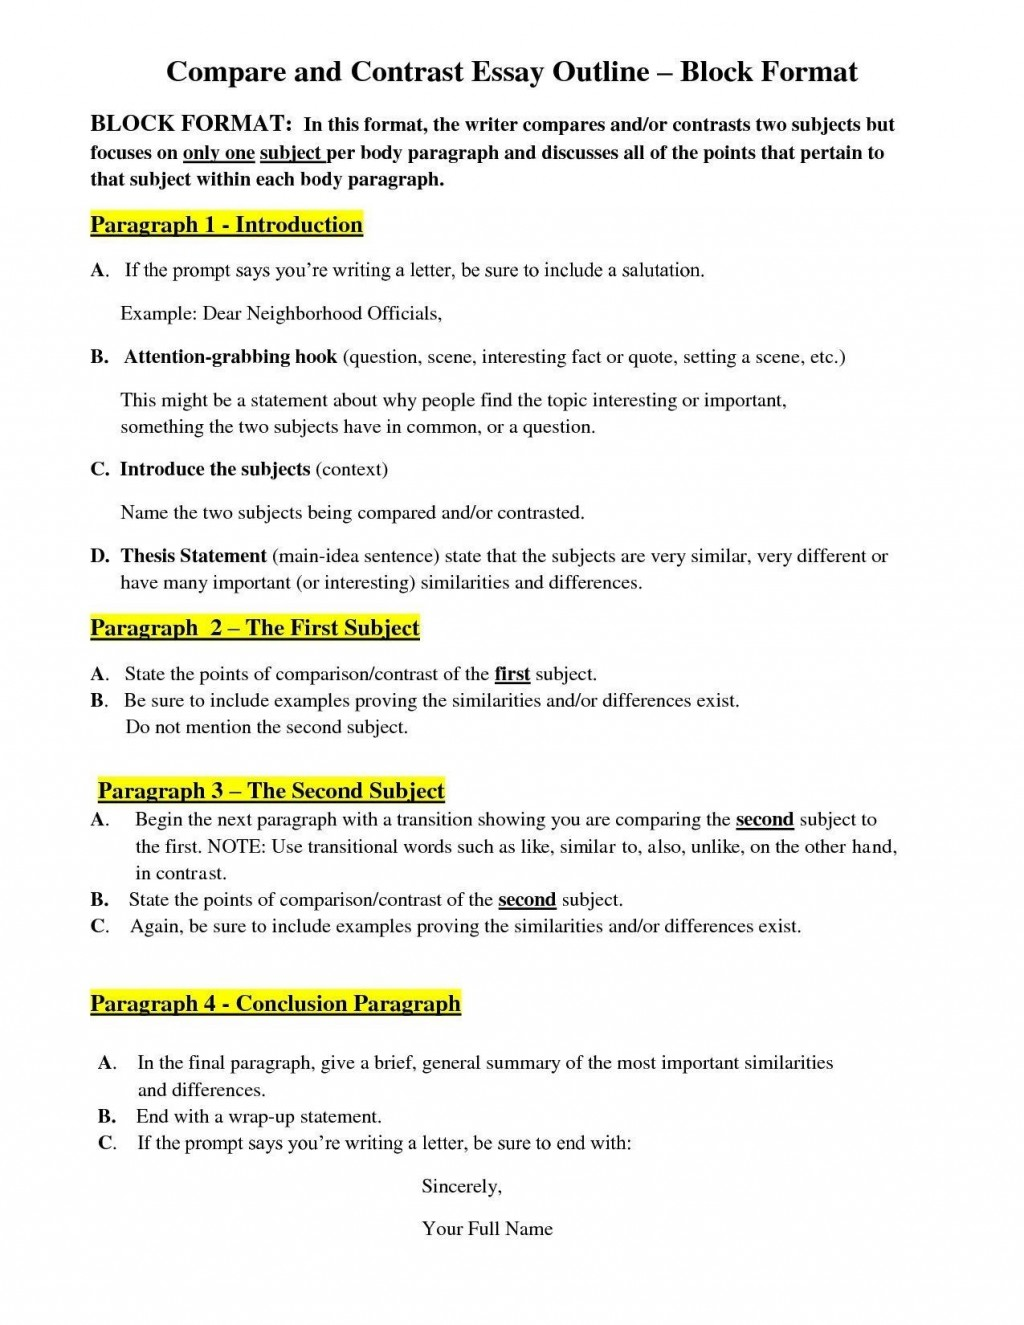 014 Essay Examplempare Andntrastmparison Best Examples Of Scenario In 6th Grade An Goo 3rd Food 5th Middle School Block Format Pdf High 4th Vs Striking Compare And Contrast Example Outline For 8th Large